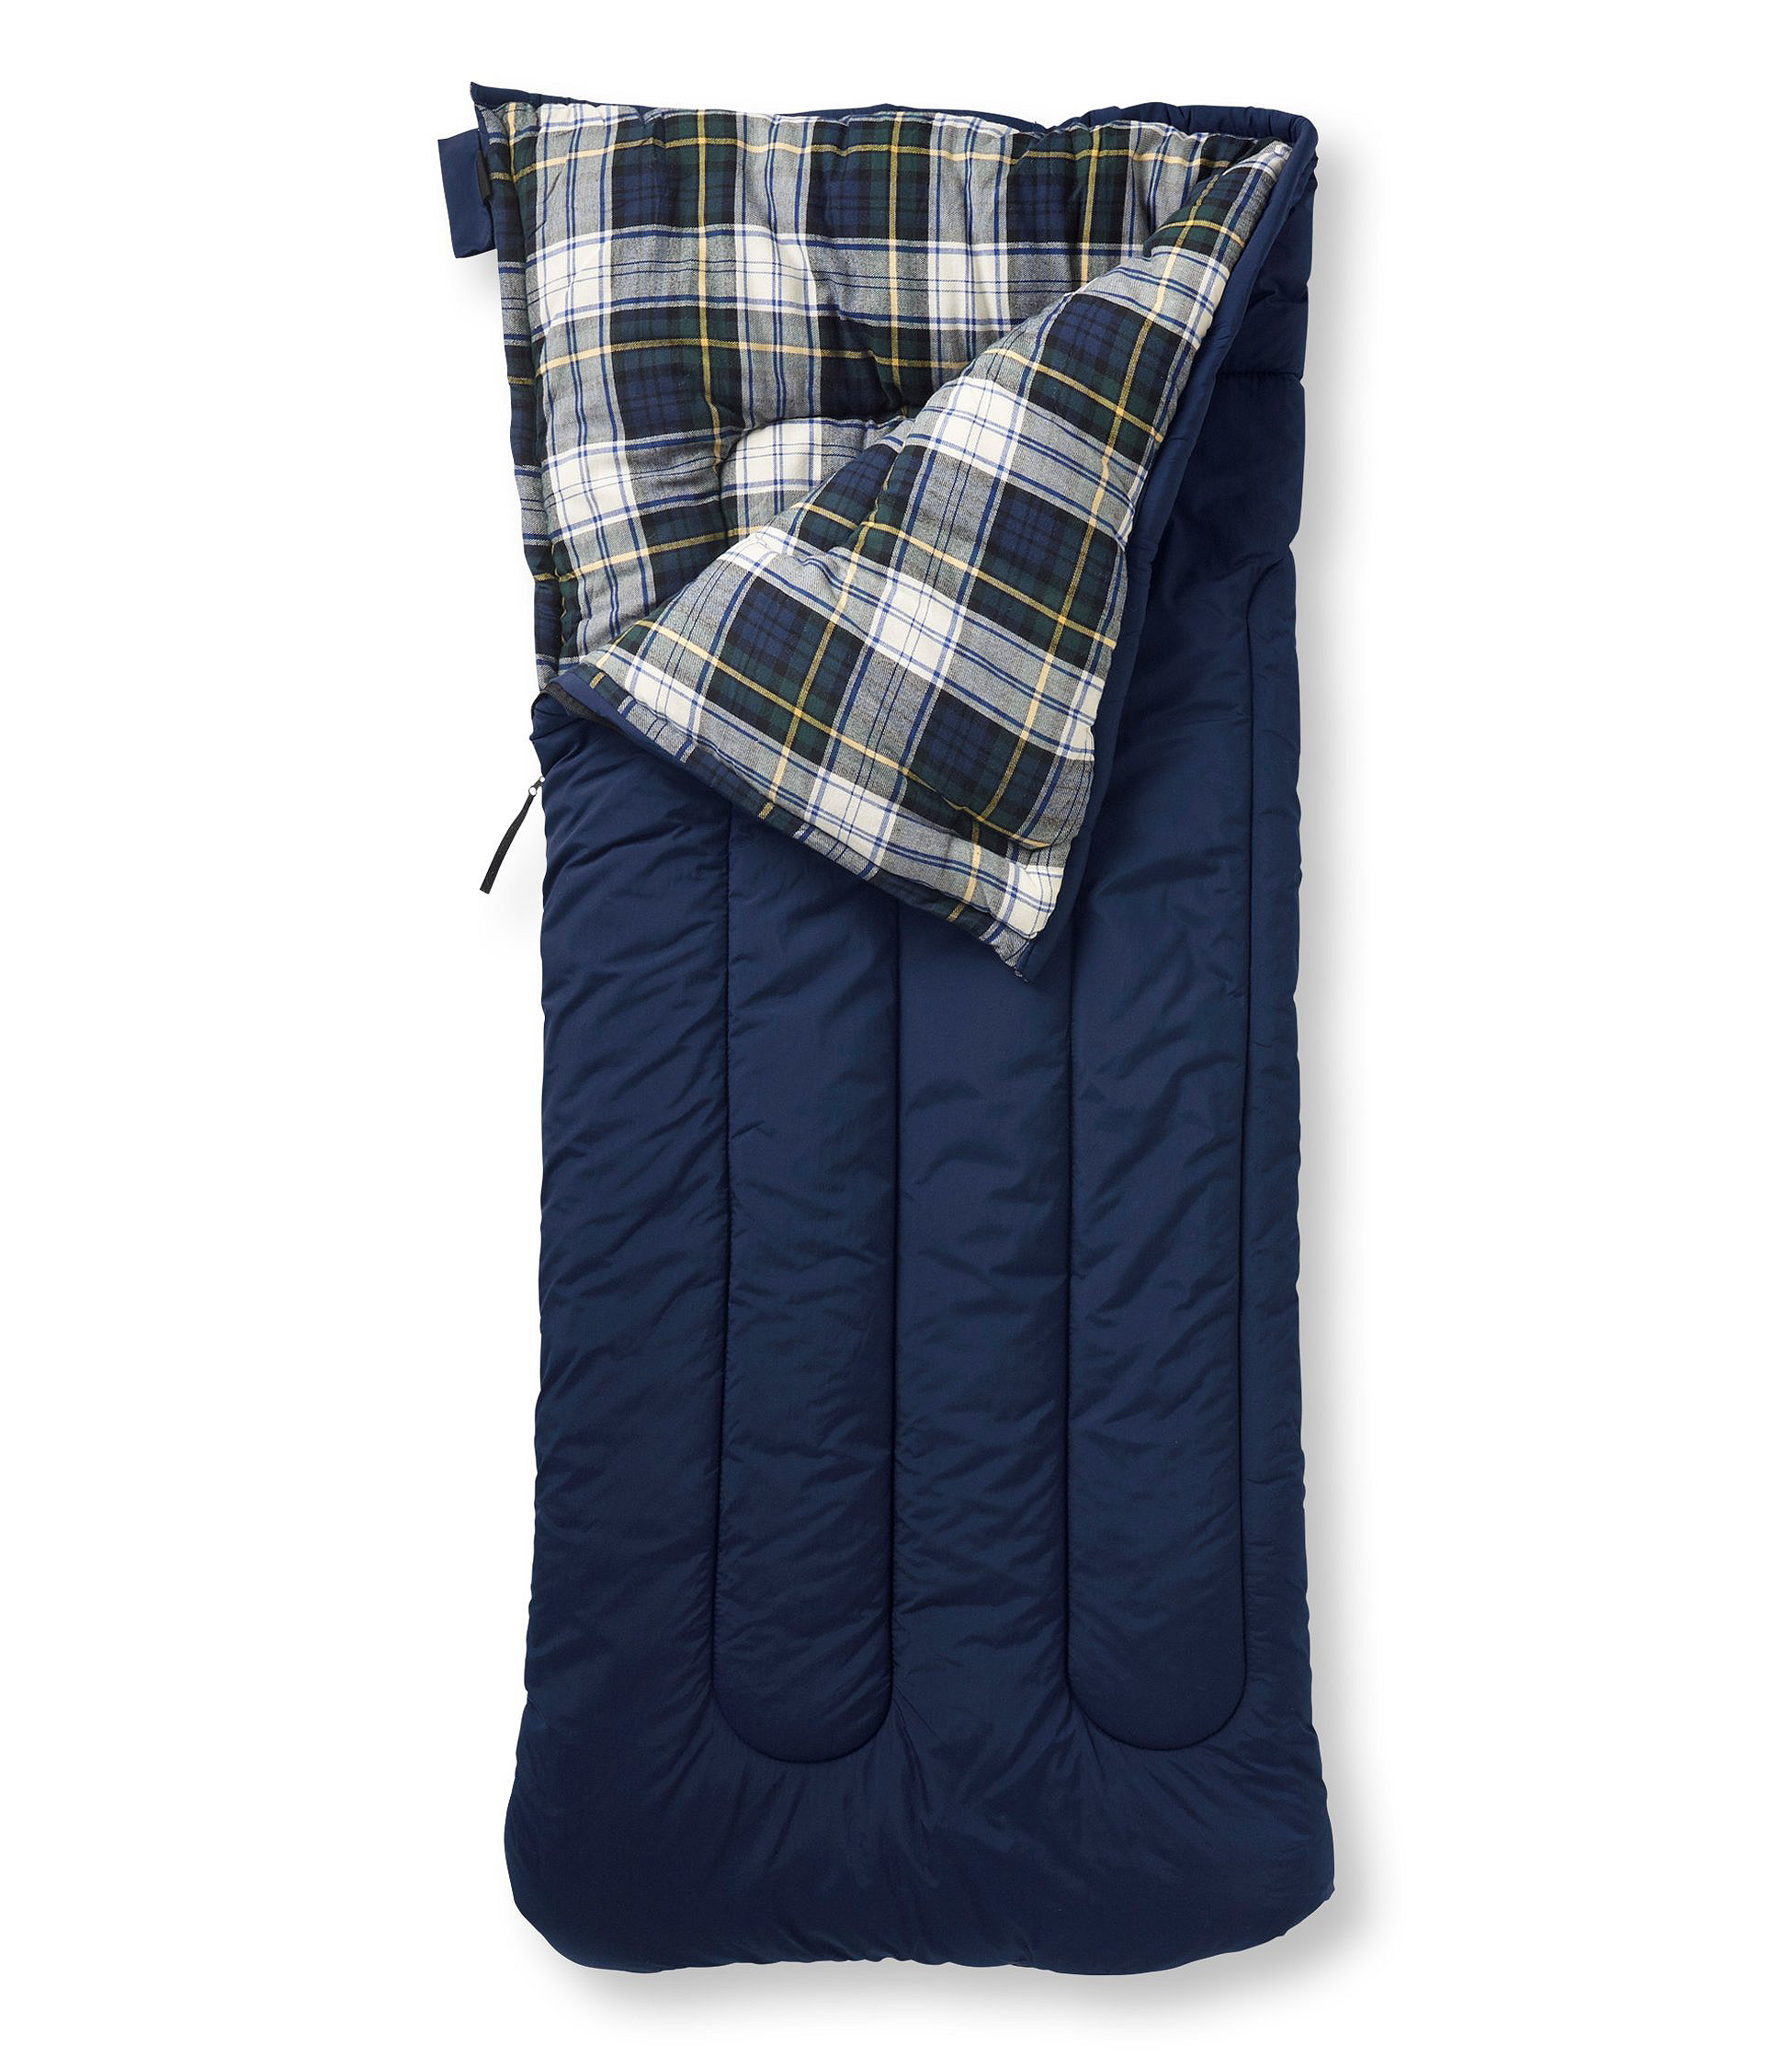 Camp Sleeping Bag, Flannel-Lined 40 | Free Shipping at L.L.Bean